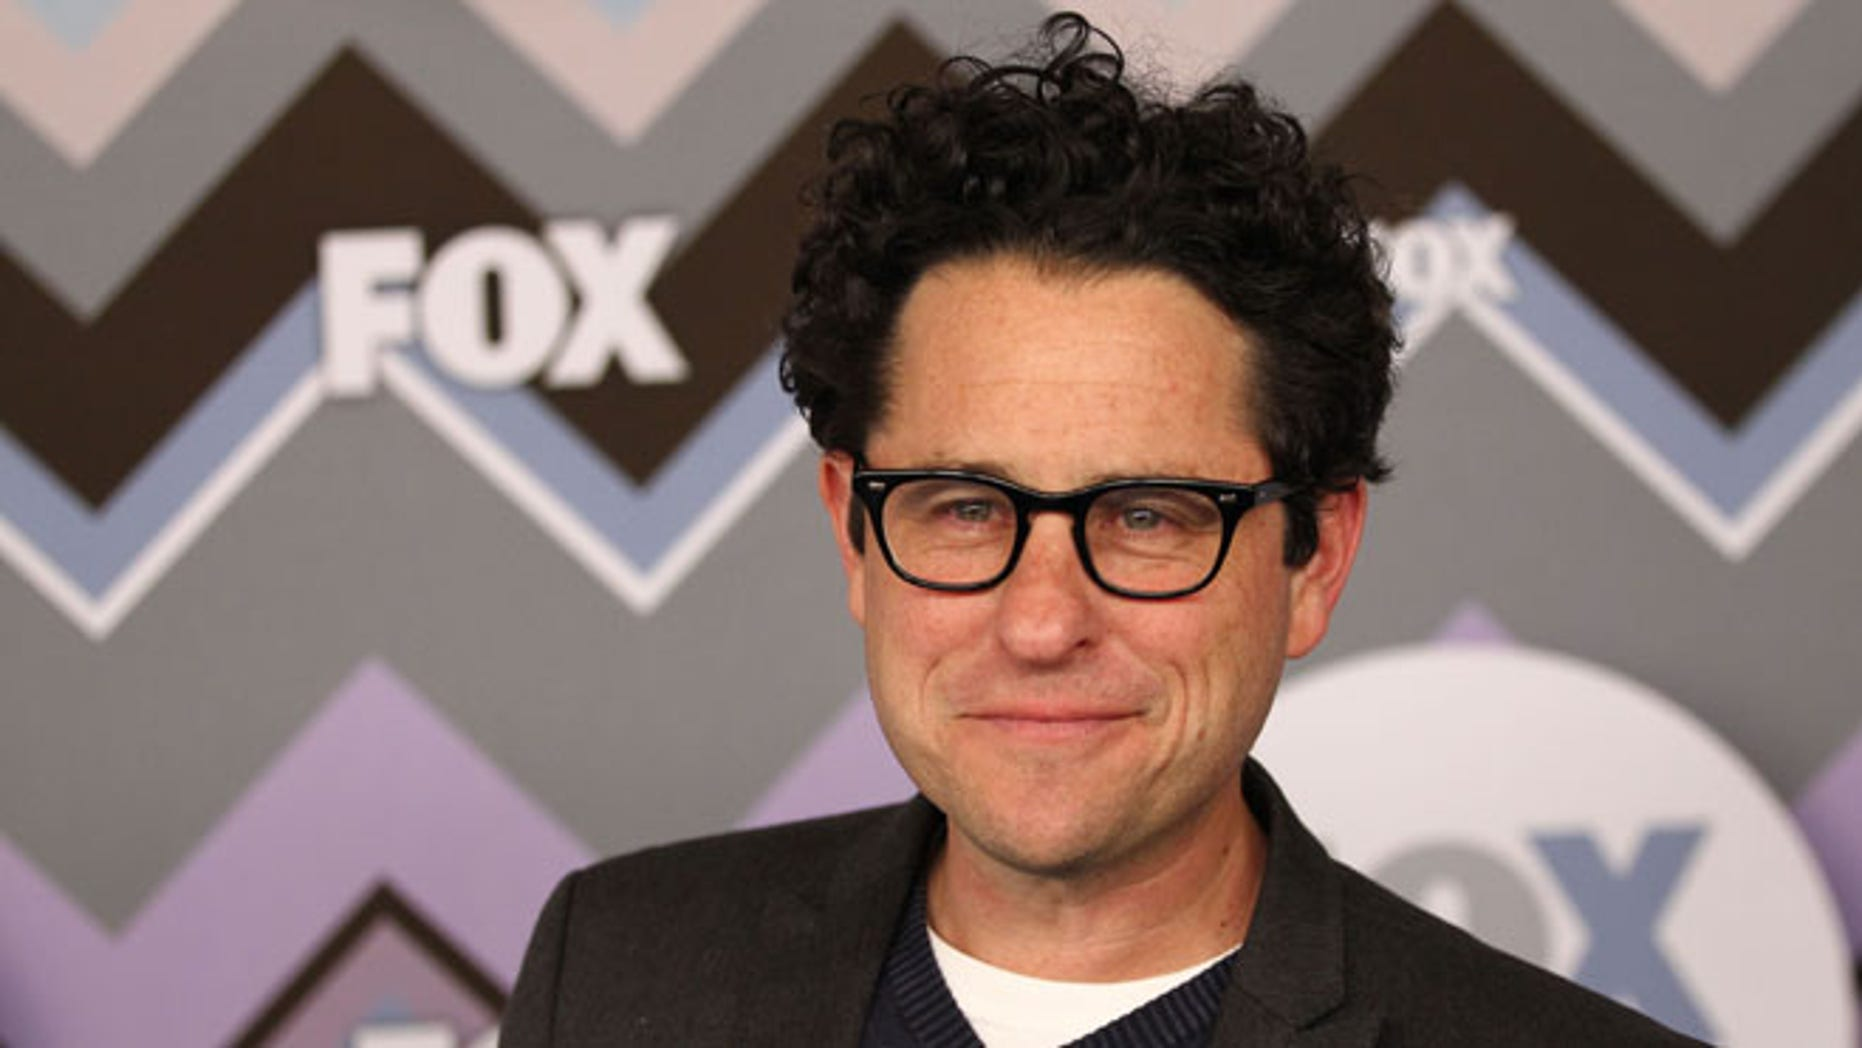 Jan. 8, 2013: In this file photo, J.J. Abrams arrives at the Winter TCA Fox All-Star Party at the Langham Huntington Hotel in Pasadena, Calif.